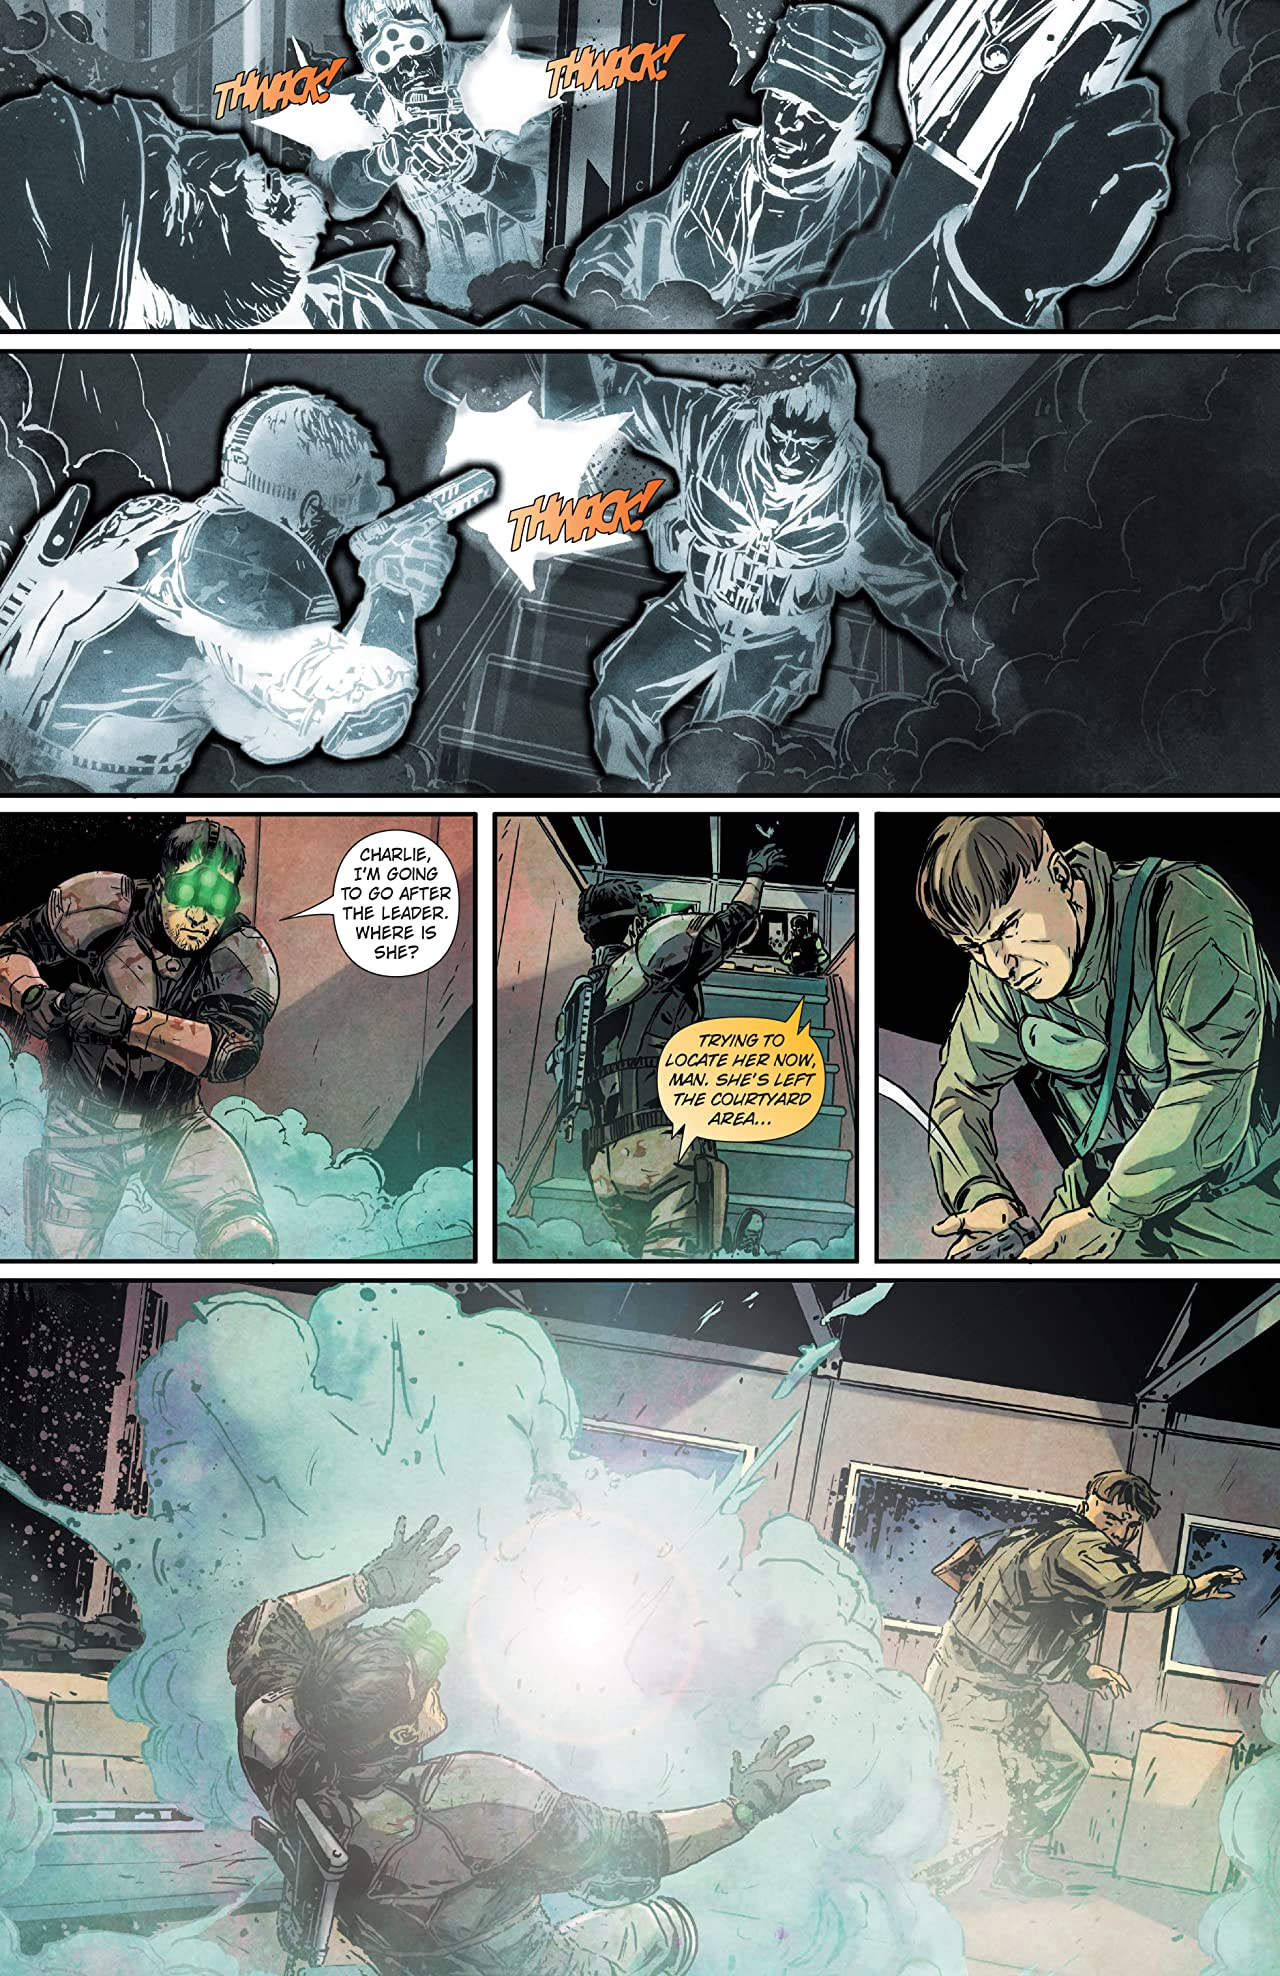 Tom Clancy's Splinter Cell: Echoes #4 (of 4): Digital Exclusive Edition